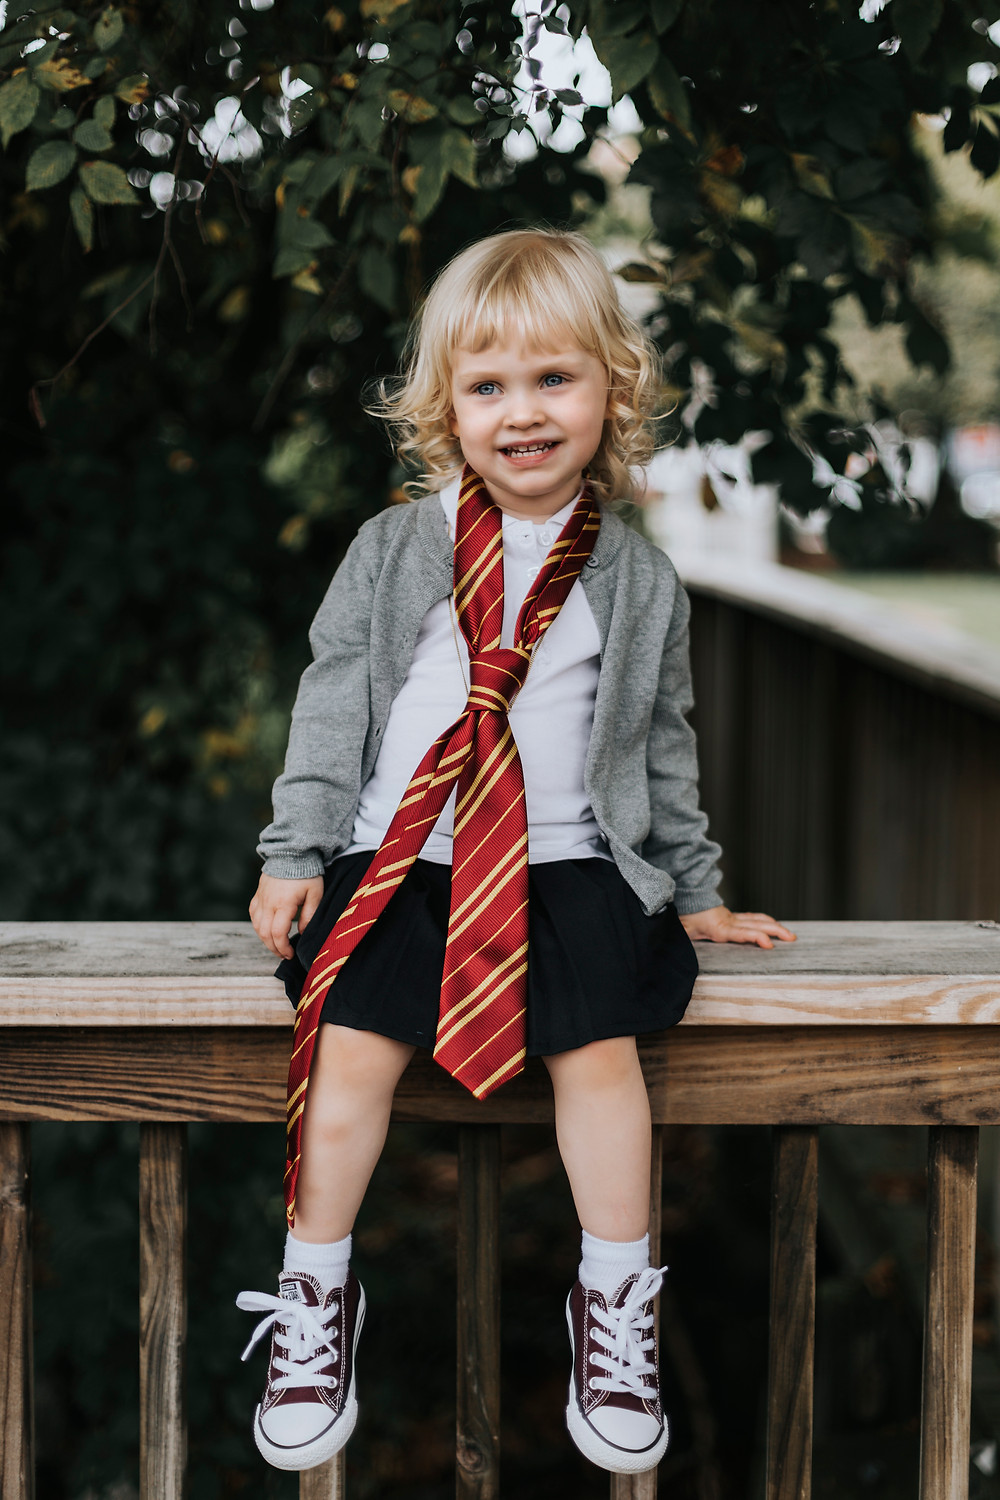 Harry Potter inspired family photos